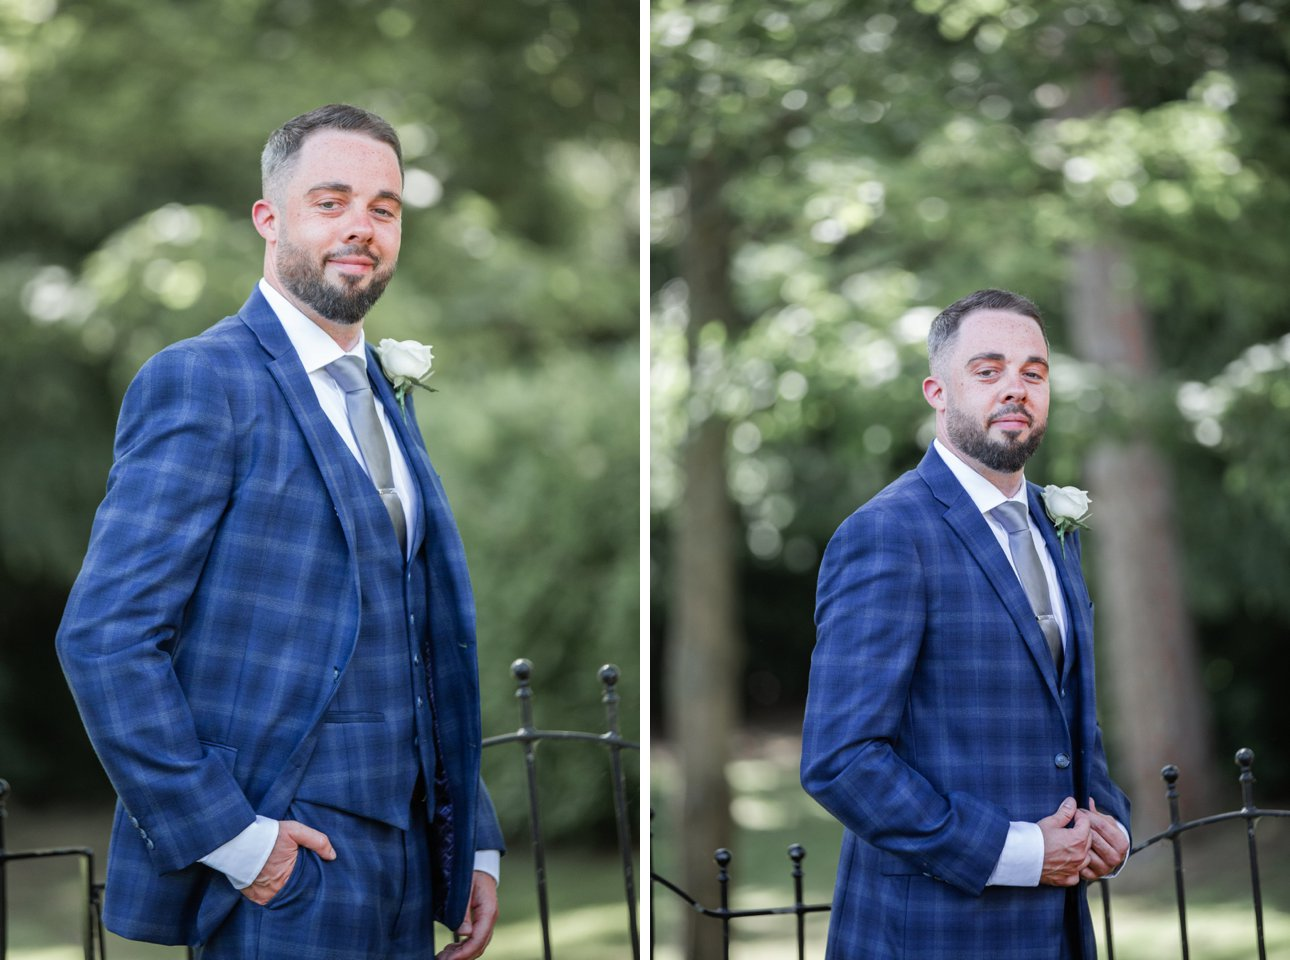 Wedding portraits of groom Andrew before his marriage to Cora at The Manor Elstree.